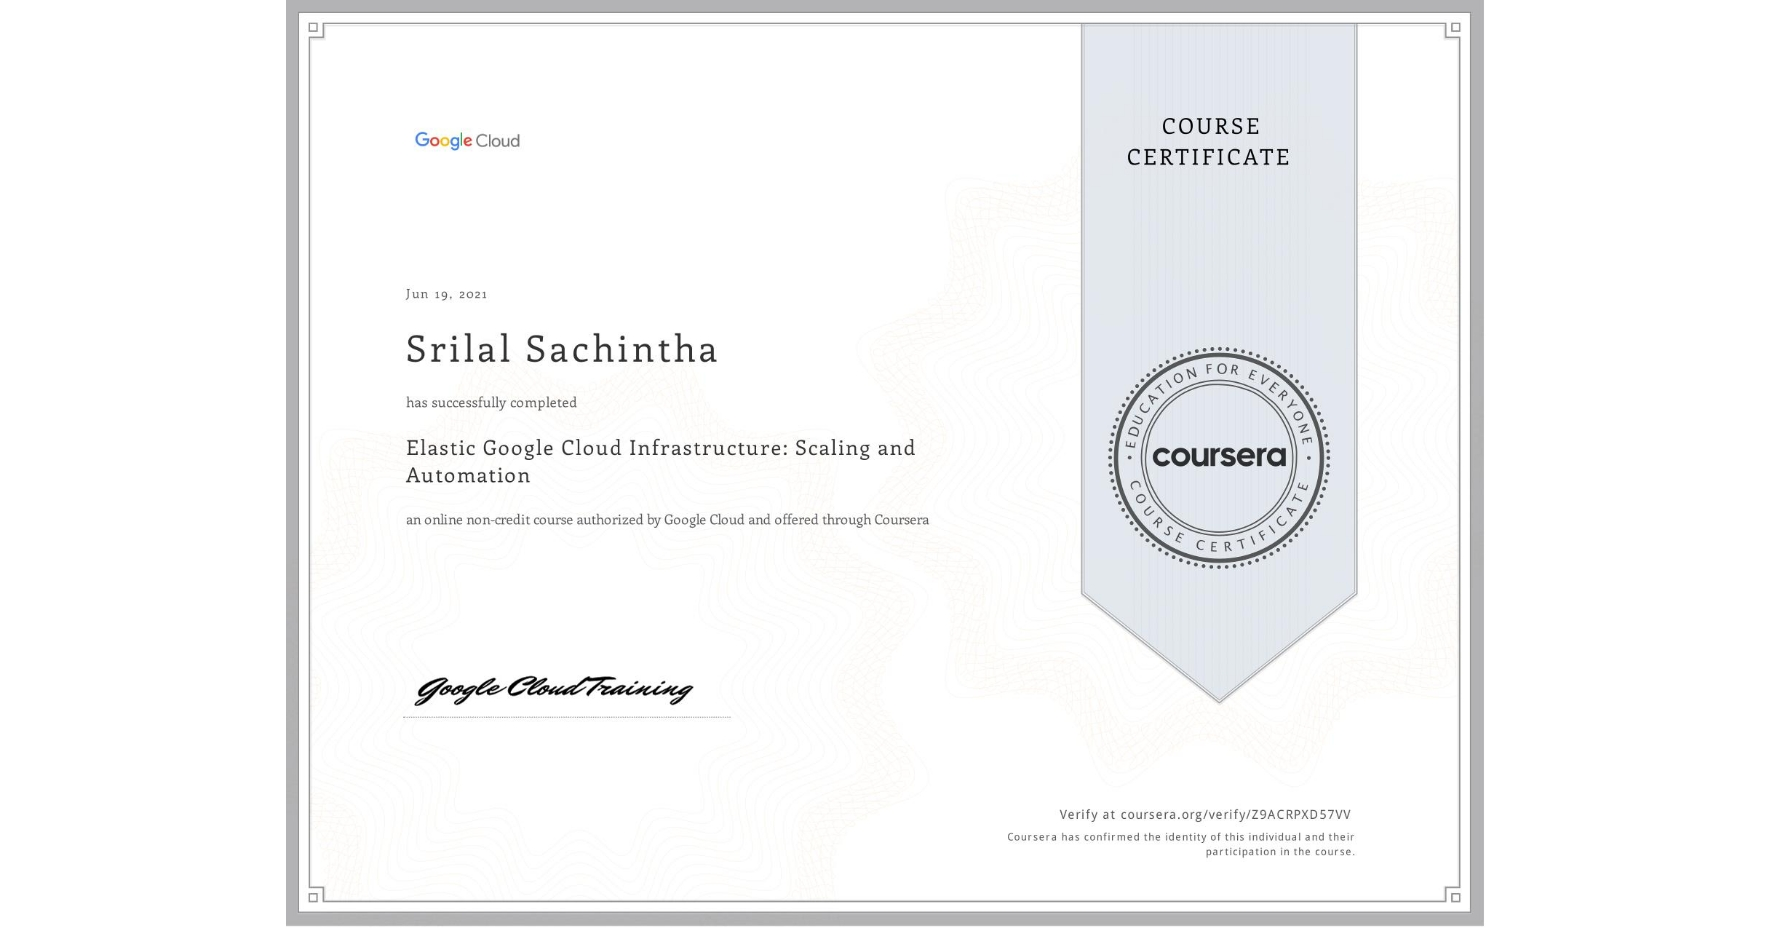 View certificate for Srilal Sachintha, Elastic Google Cloud Infrastructure: Scaling and Automation, an online non-credit course authorized by Google Cloud and offered through Coursera